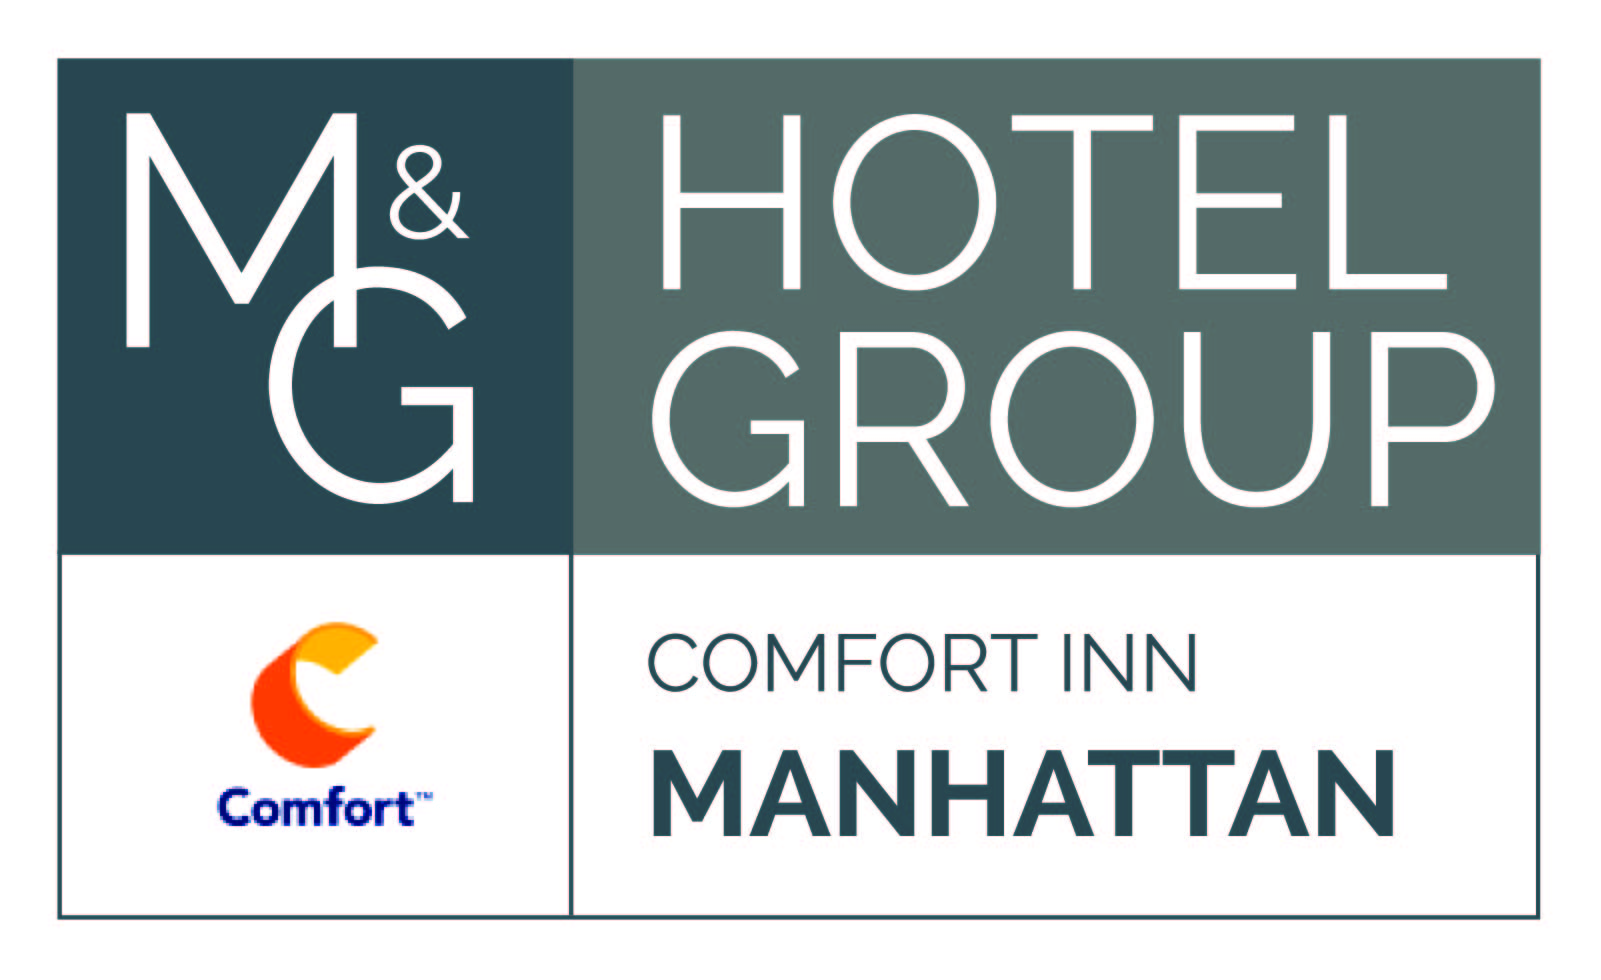 Comfort Inn & Suites Manhattan